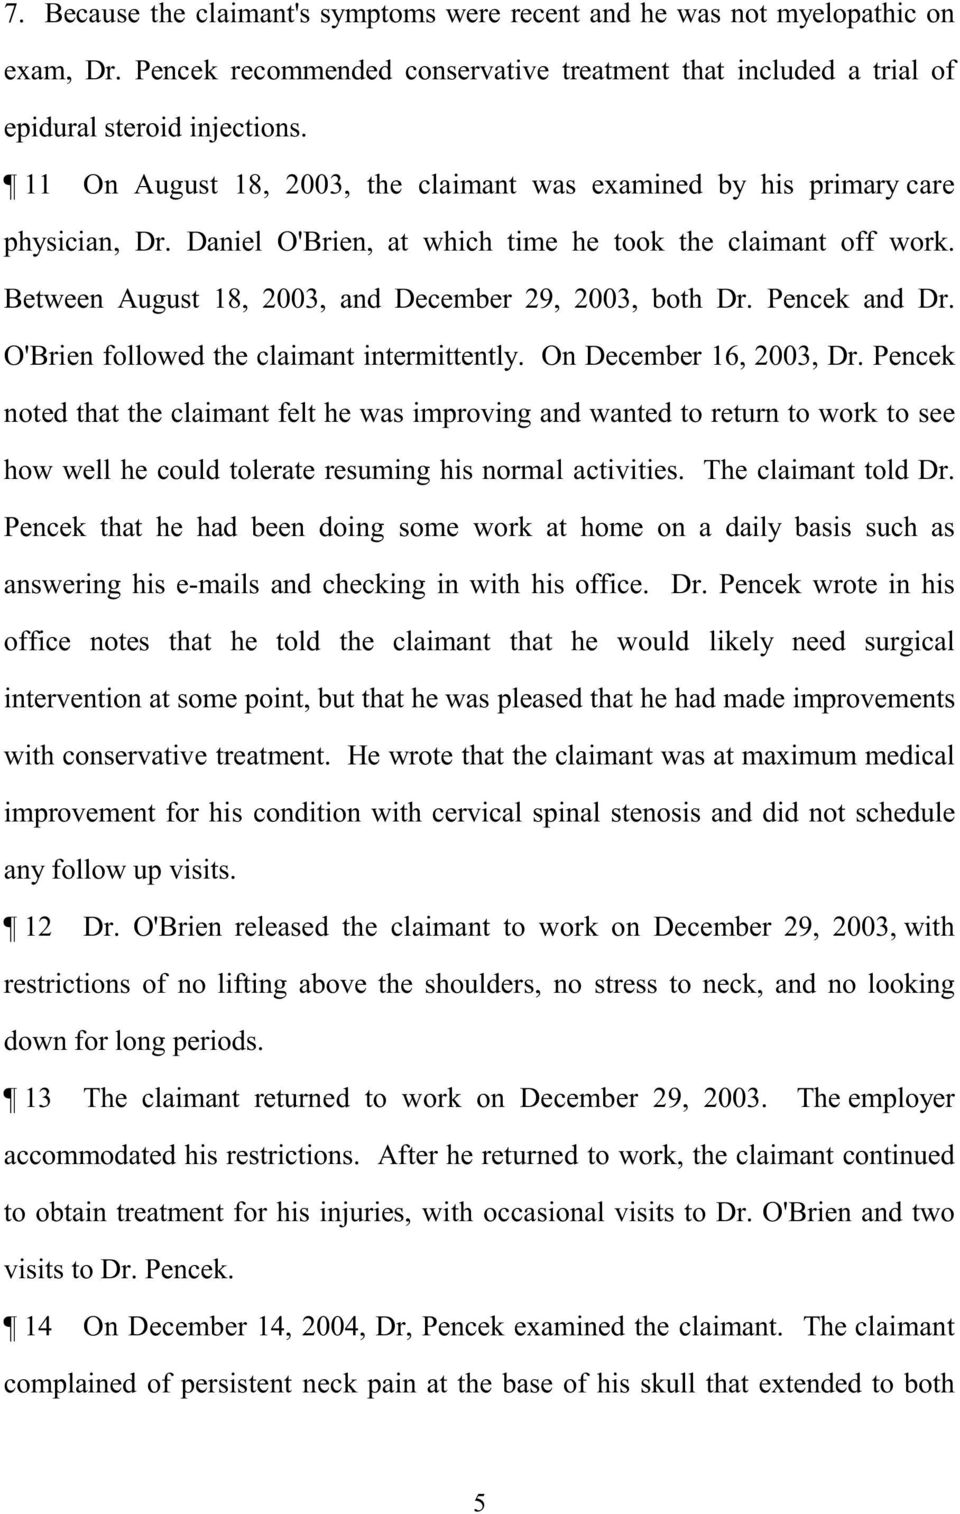 Between August 18, 2003, and December 29, 2003, both Dr. Pencek and Dr. O'Brien followed the claimant intermittently. On December 16, 2003, Dr.